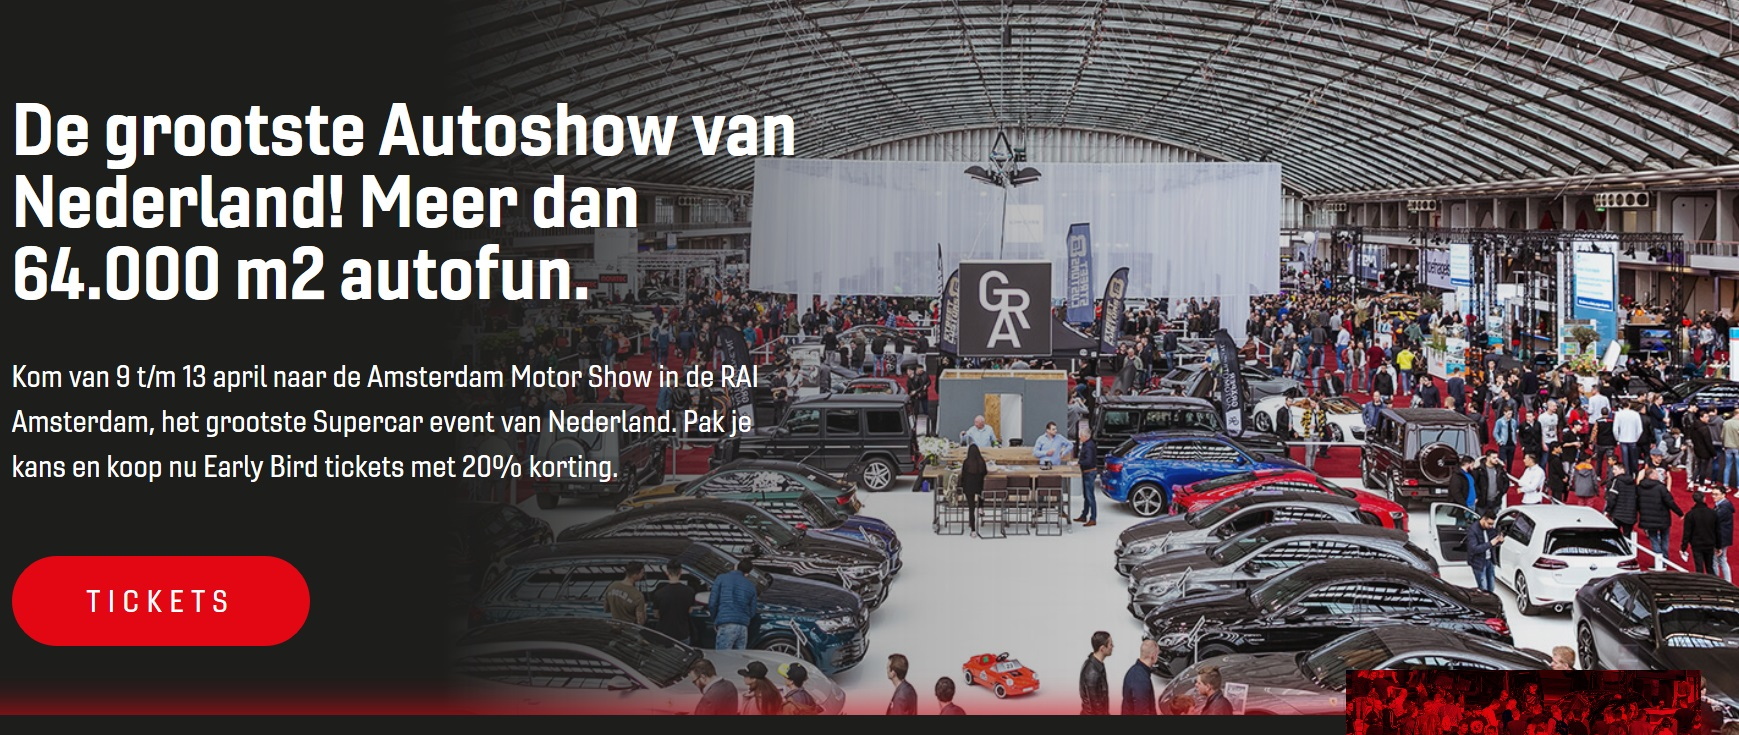 10 t/m 13 april 2020 International Amsterdam Motor Show - Amsterdam Noord-Holland